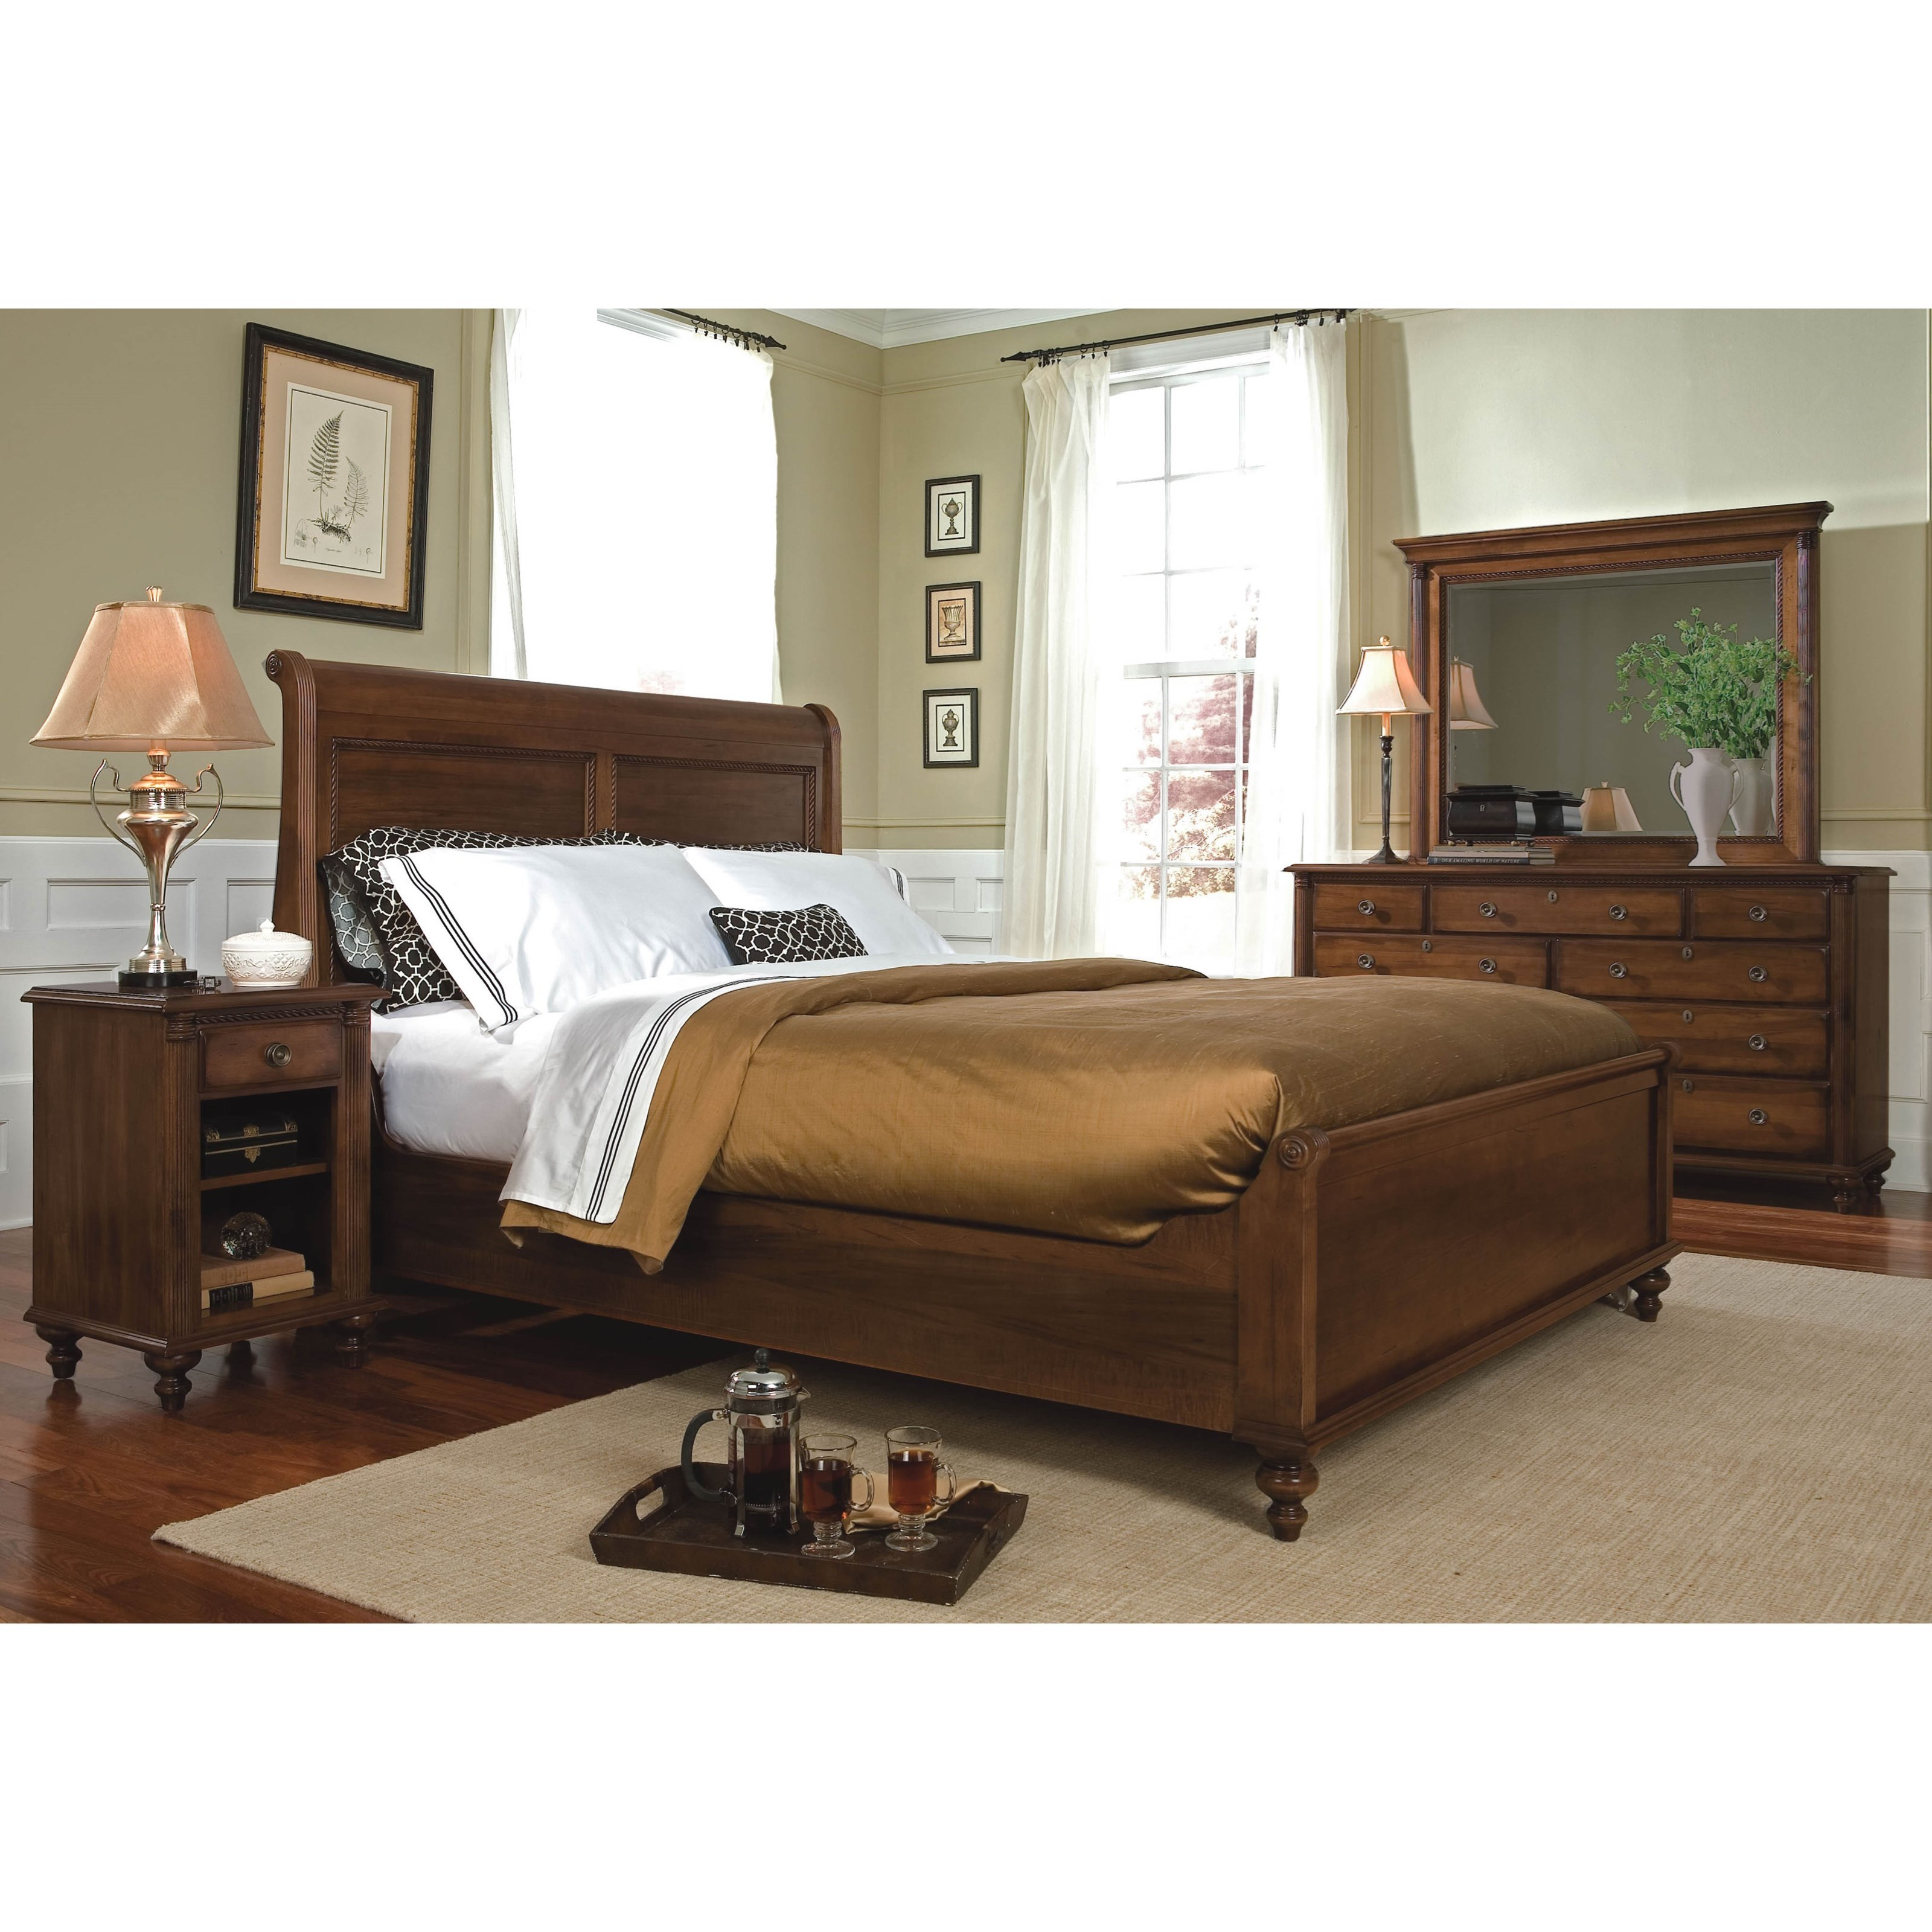 Saville Row Queen Sleigh Bed with Low Footboard by Durham at Jordan's Home Furnishings